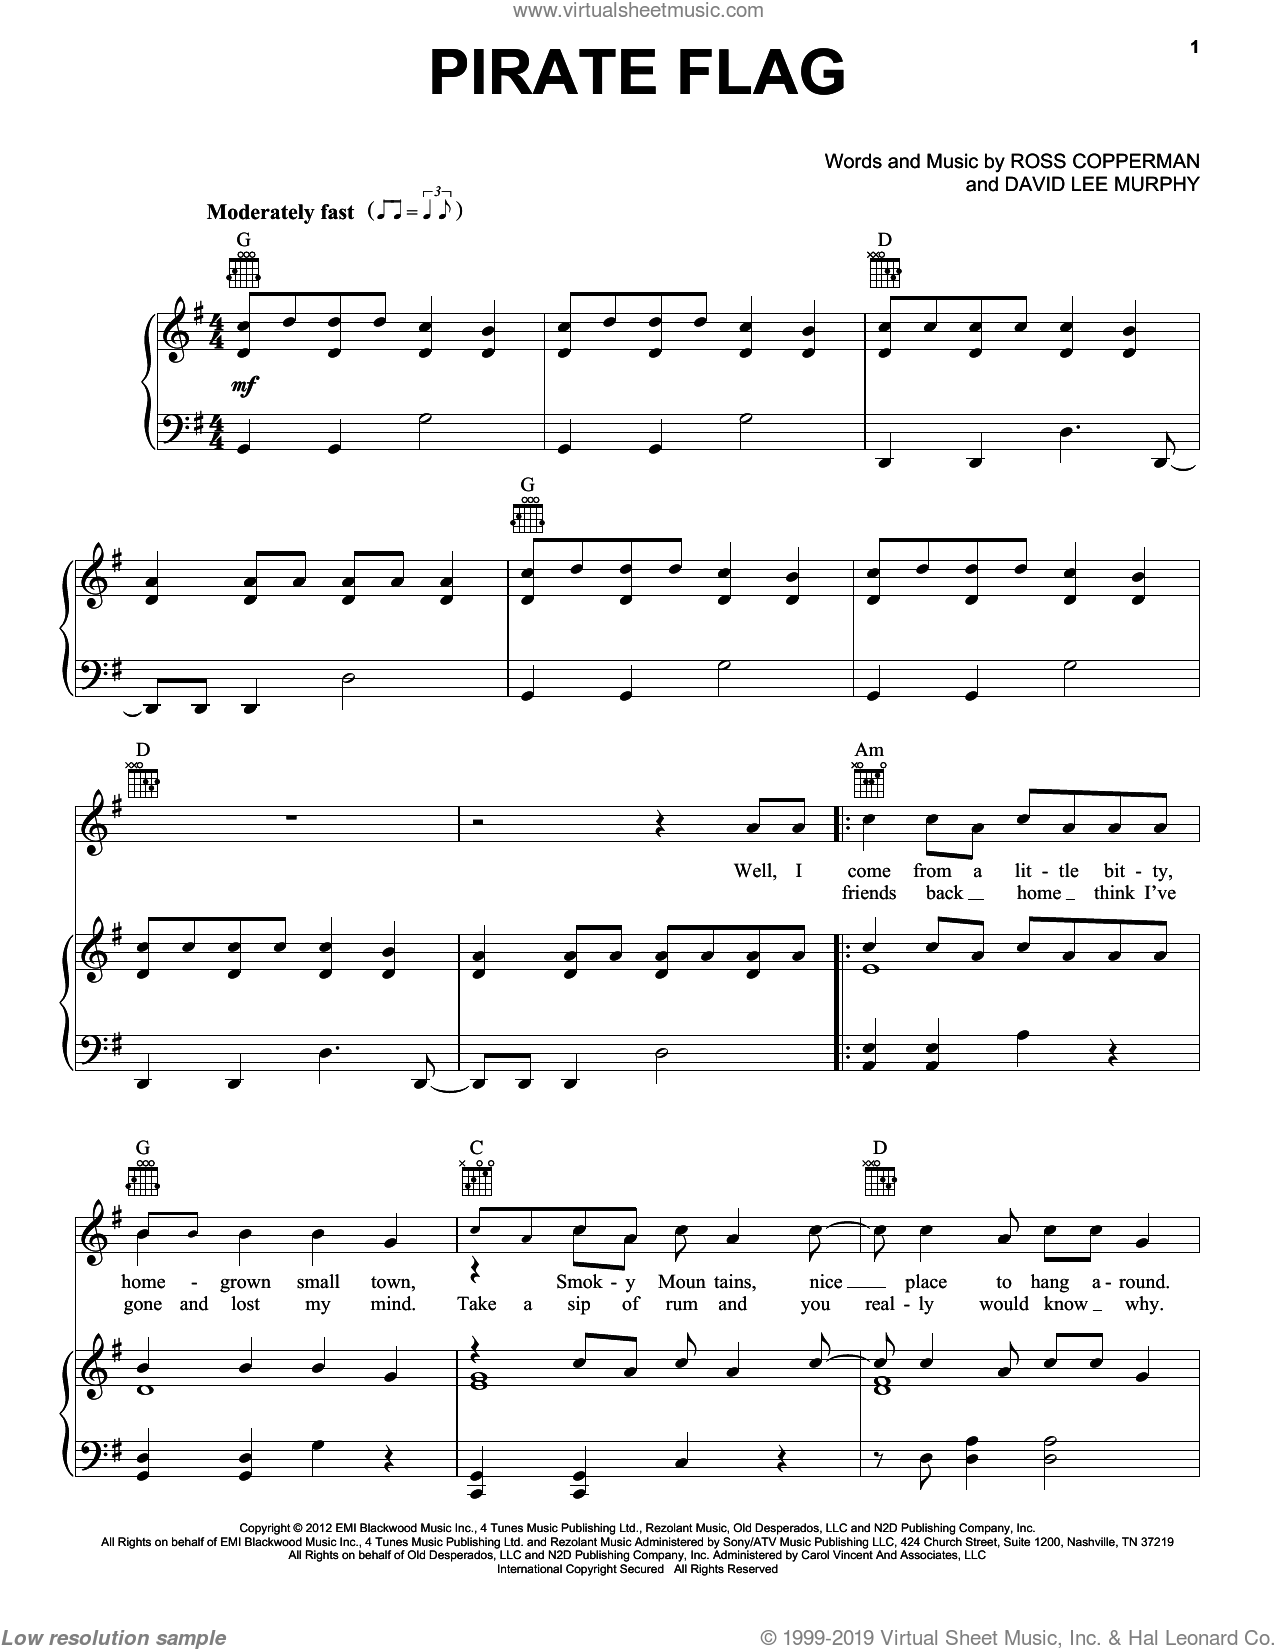 Pirate Flag sheet music for voice and piano by Kenny Chesney